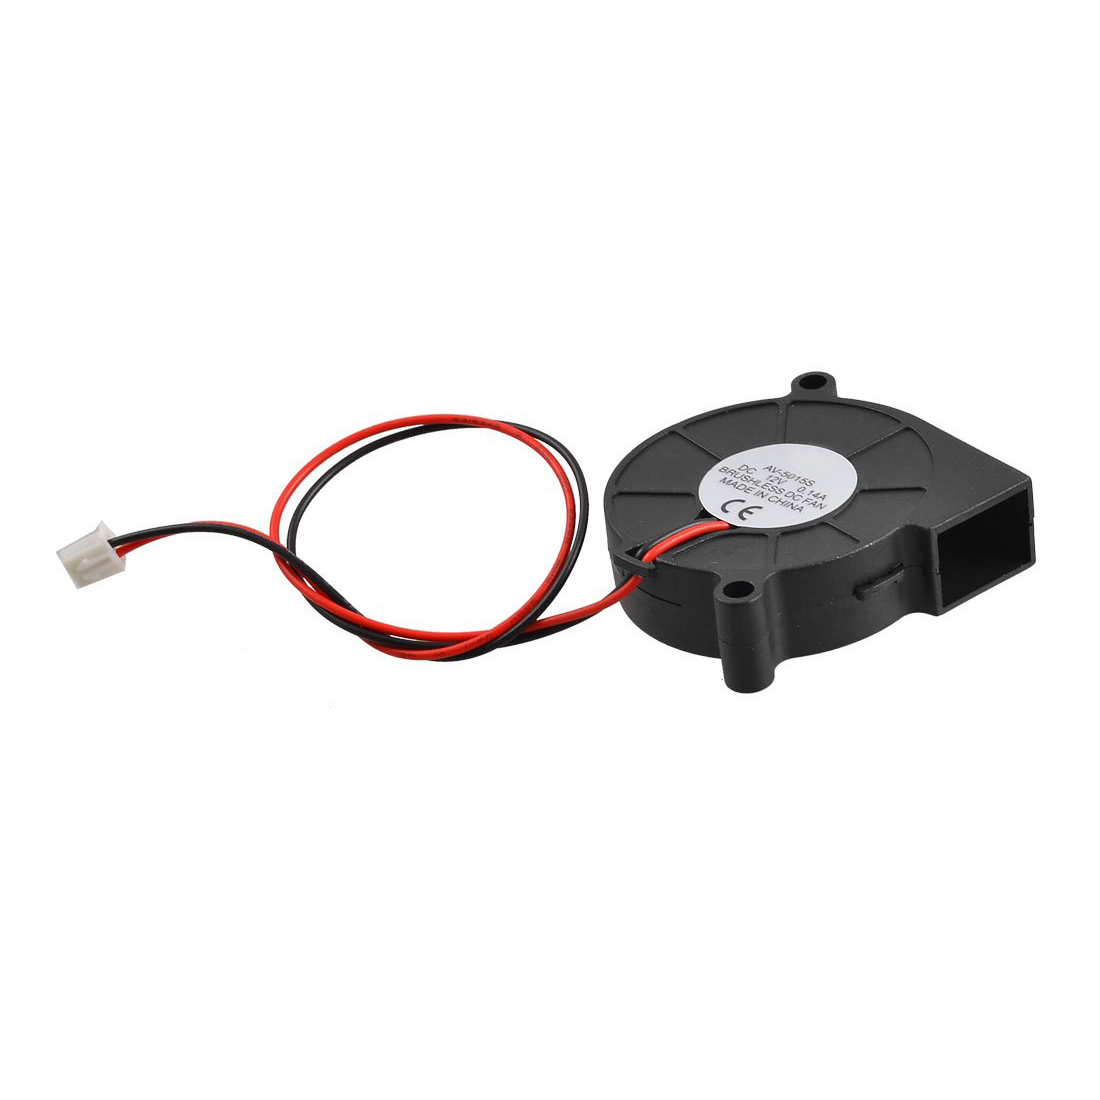 Black Brushless DC Cooling Blower Fan 5015S 12V 0.14A 50mm X 15mm Rated DC 12V Quiet Sleeve-bearing Design Ultra Quiet MID Speed